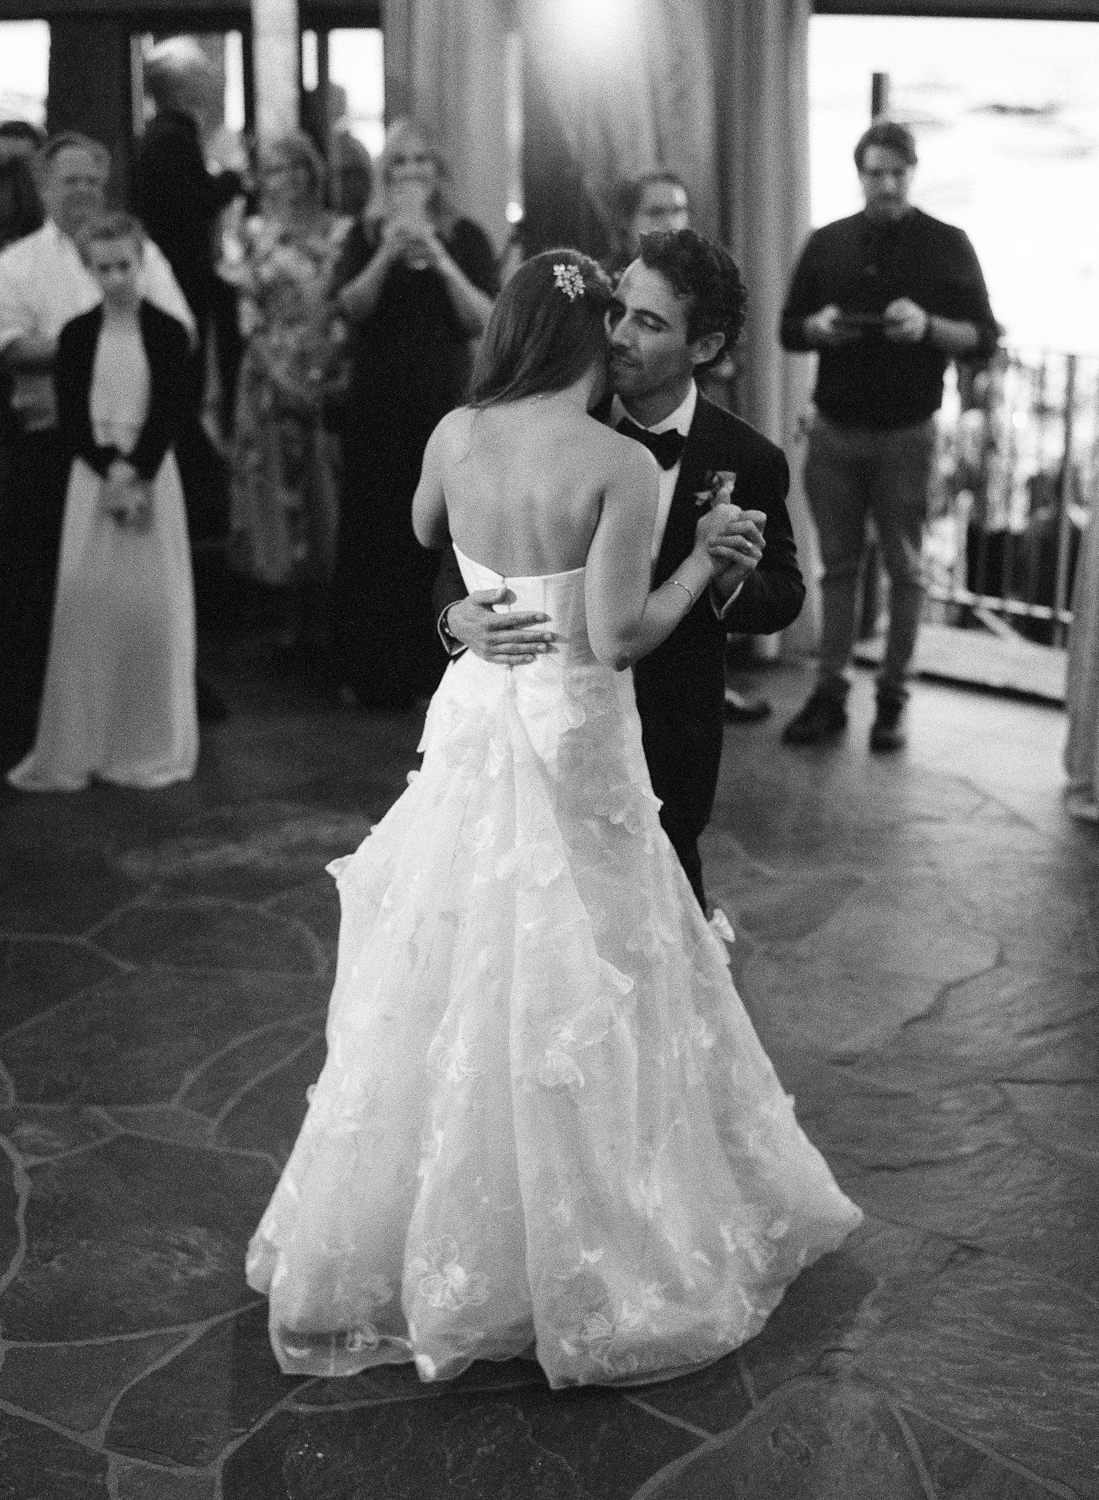 Natalie and Grant wedding bride and groom's first dance